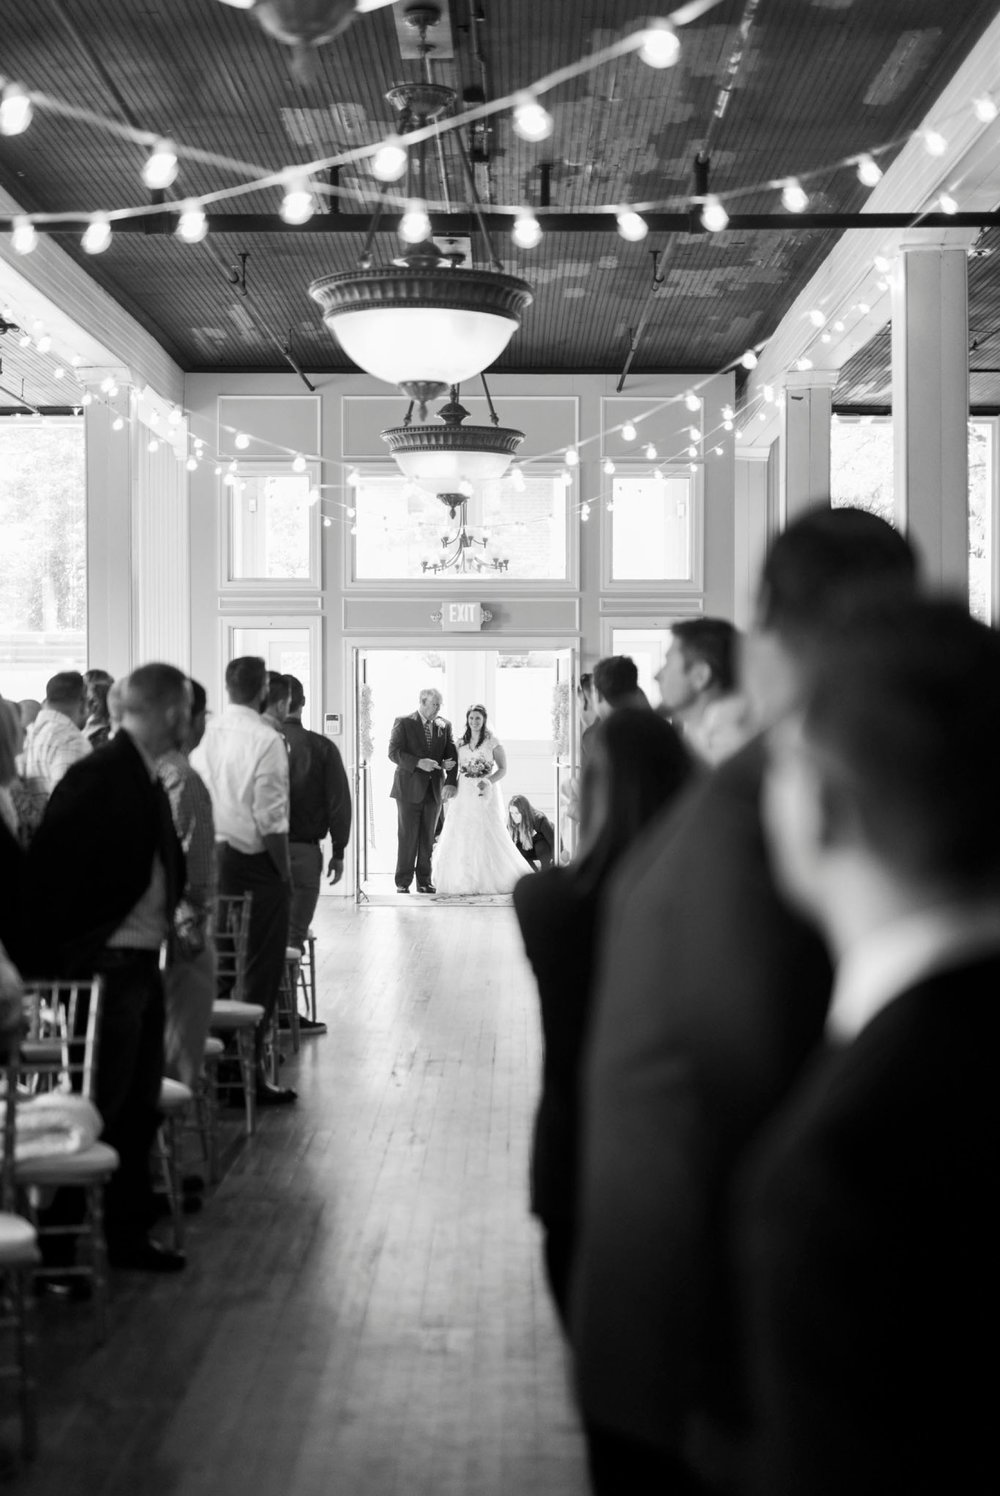 Trescaon8th_DowntownLynchburg_Virginiaweddingphotographer 43.jpg